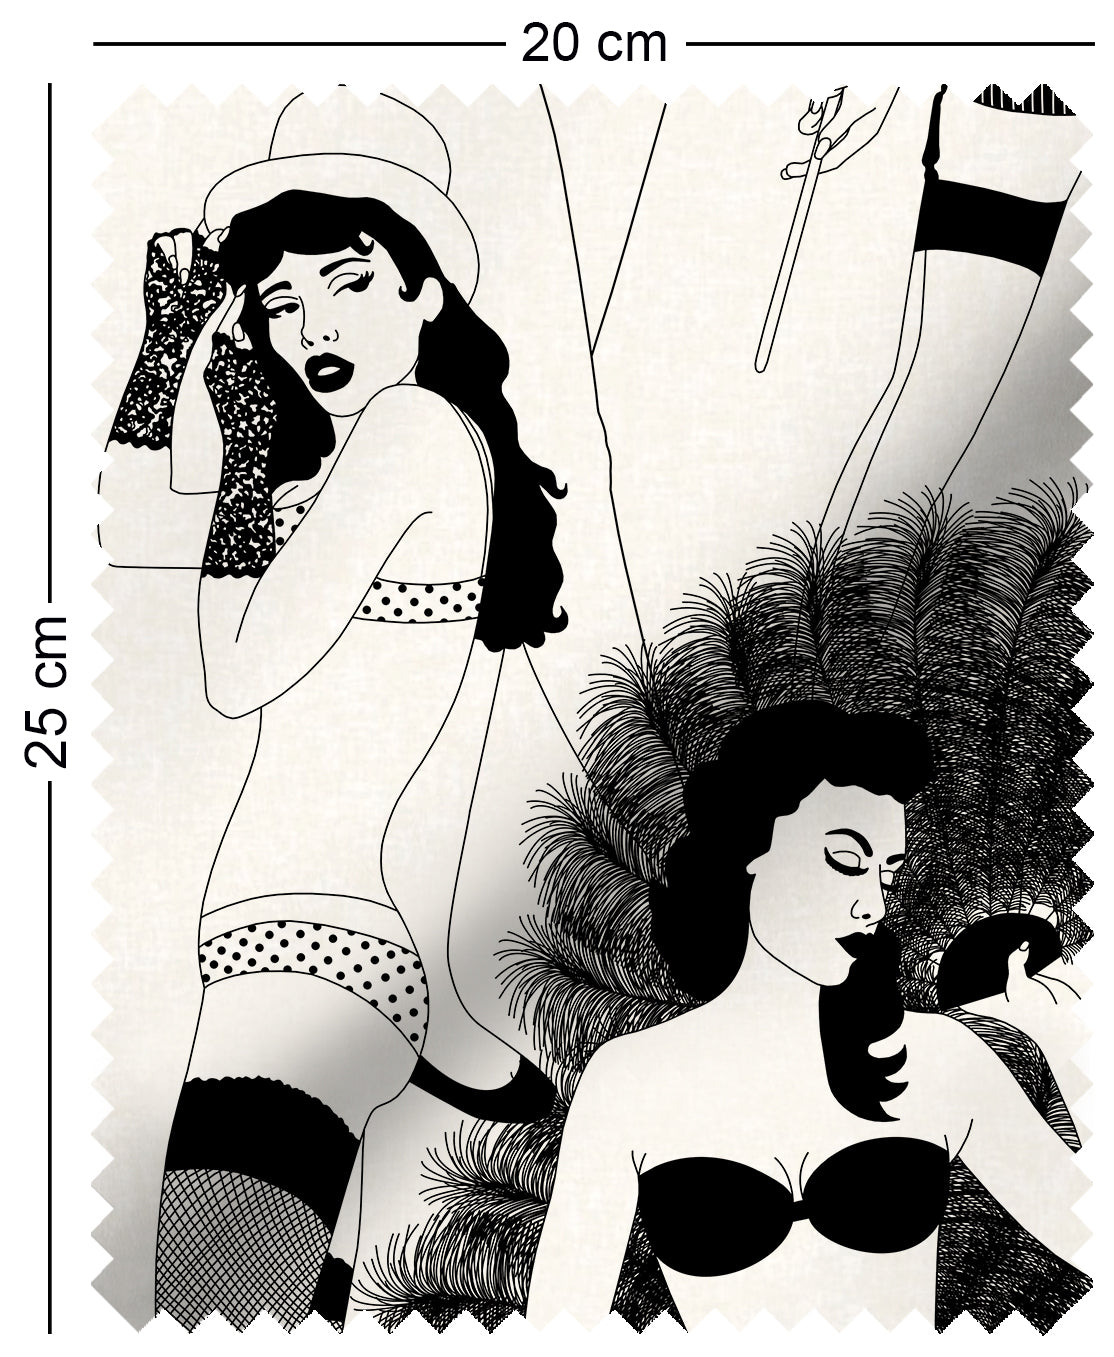 fabric swatch with cabaret burlesque dancer design in monochrome play boy femlin art